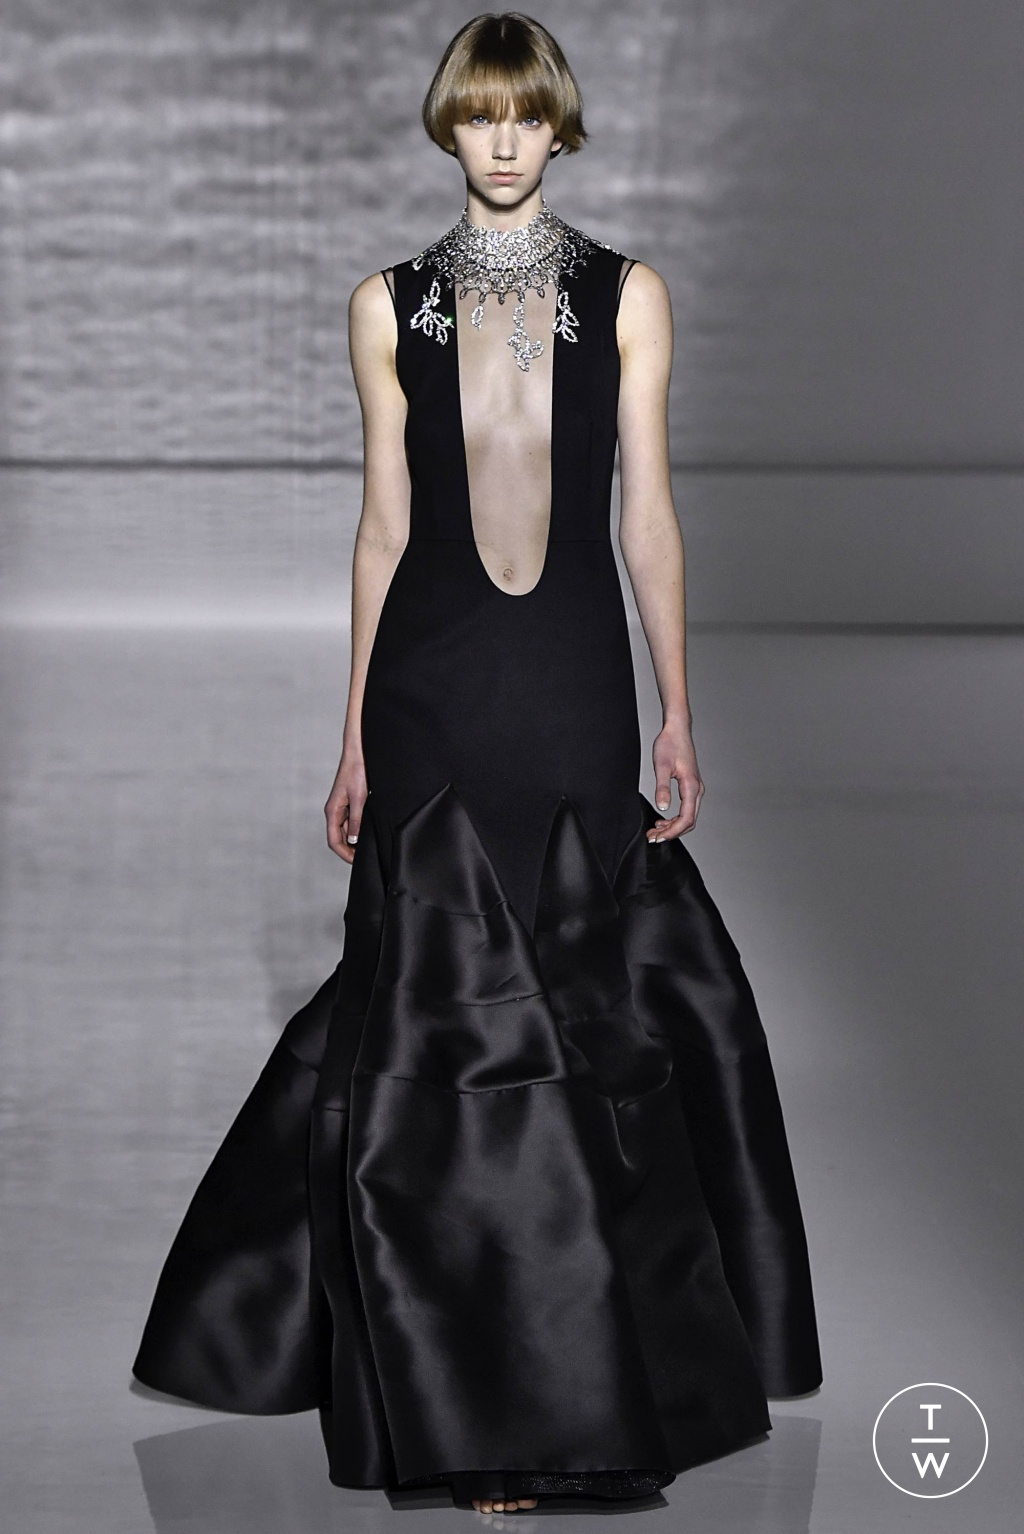 Givenchy S/S20 couture 20   The Fashion Search Engine   TAGWALK